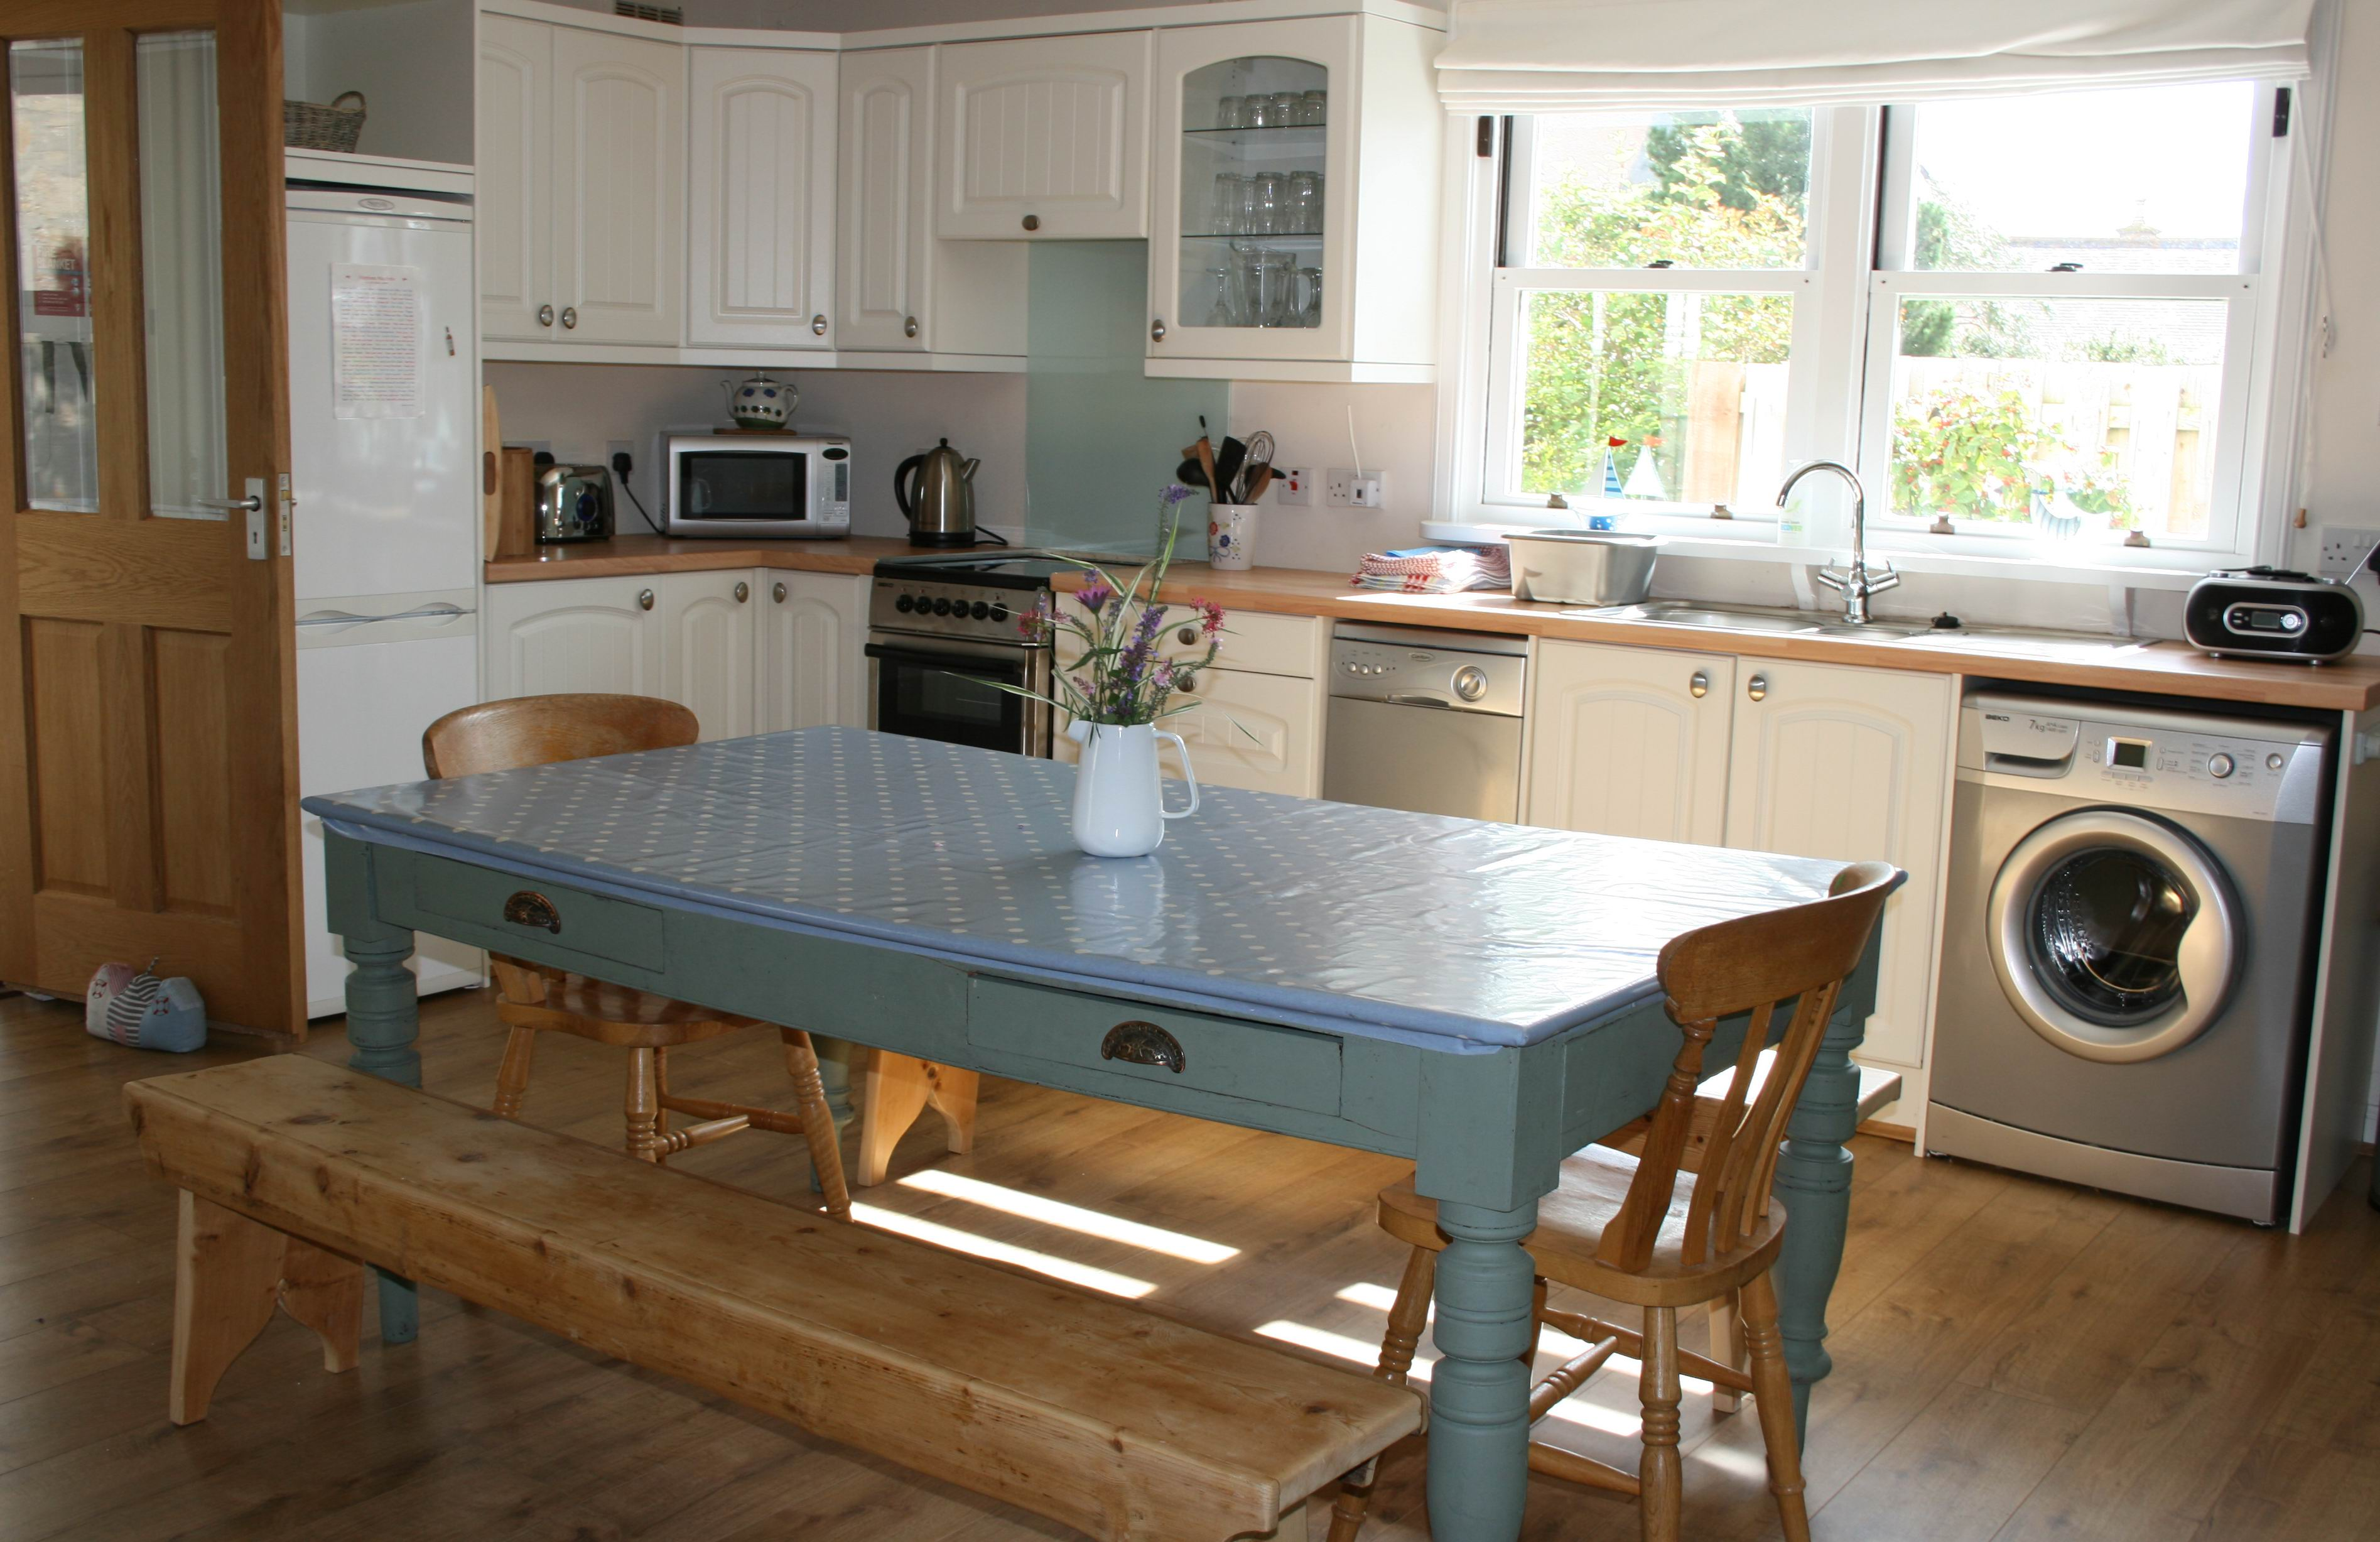 The kitchen at Rosebay Cottage, Findhorn